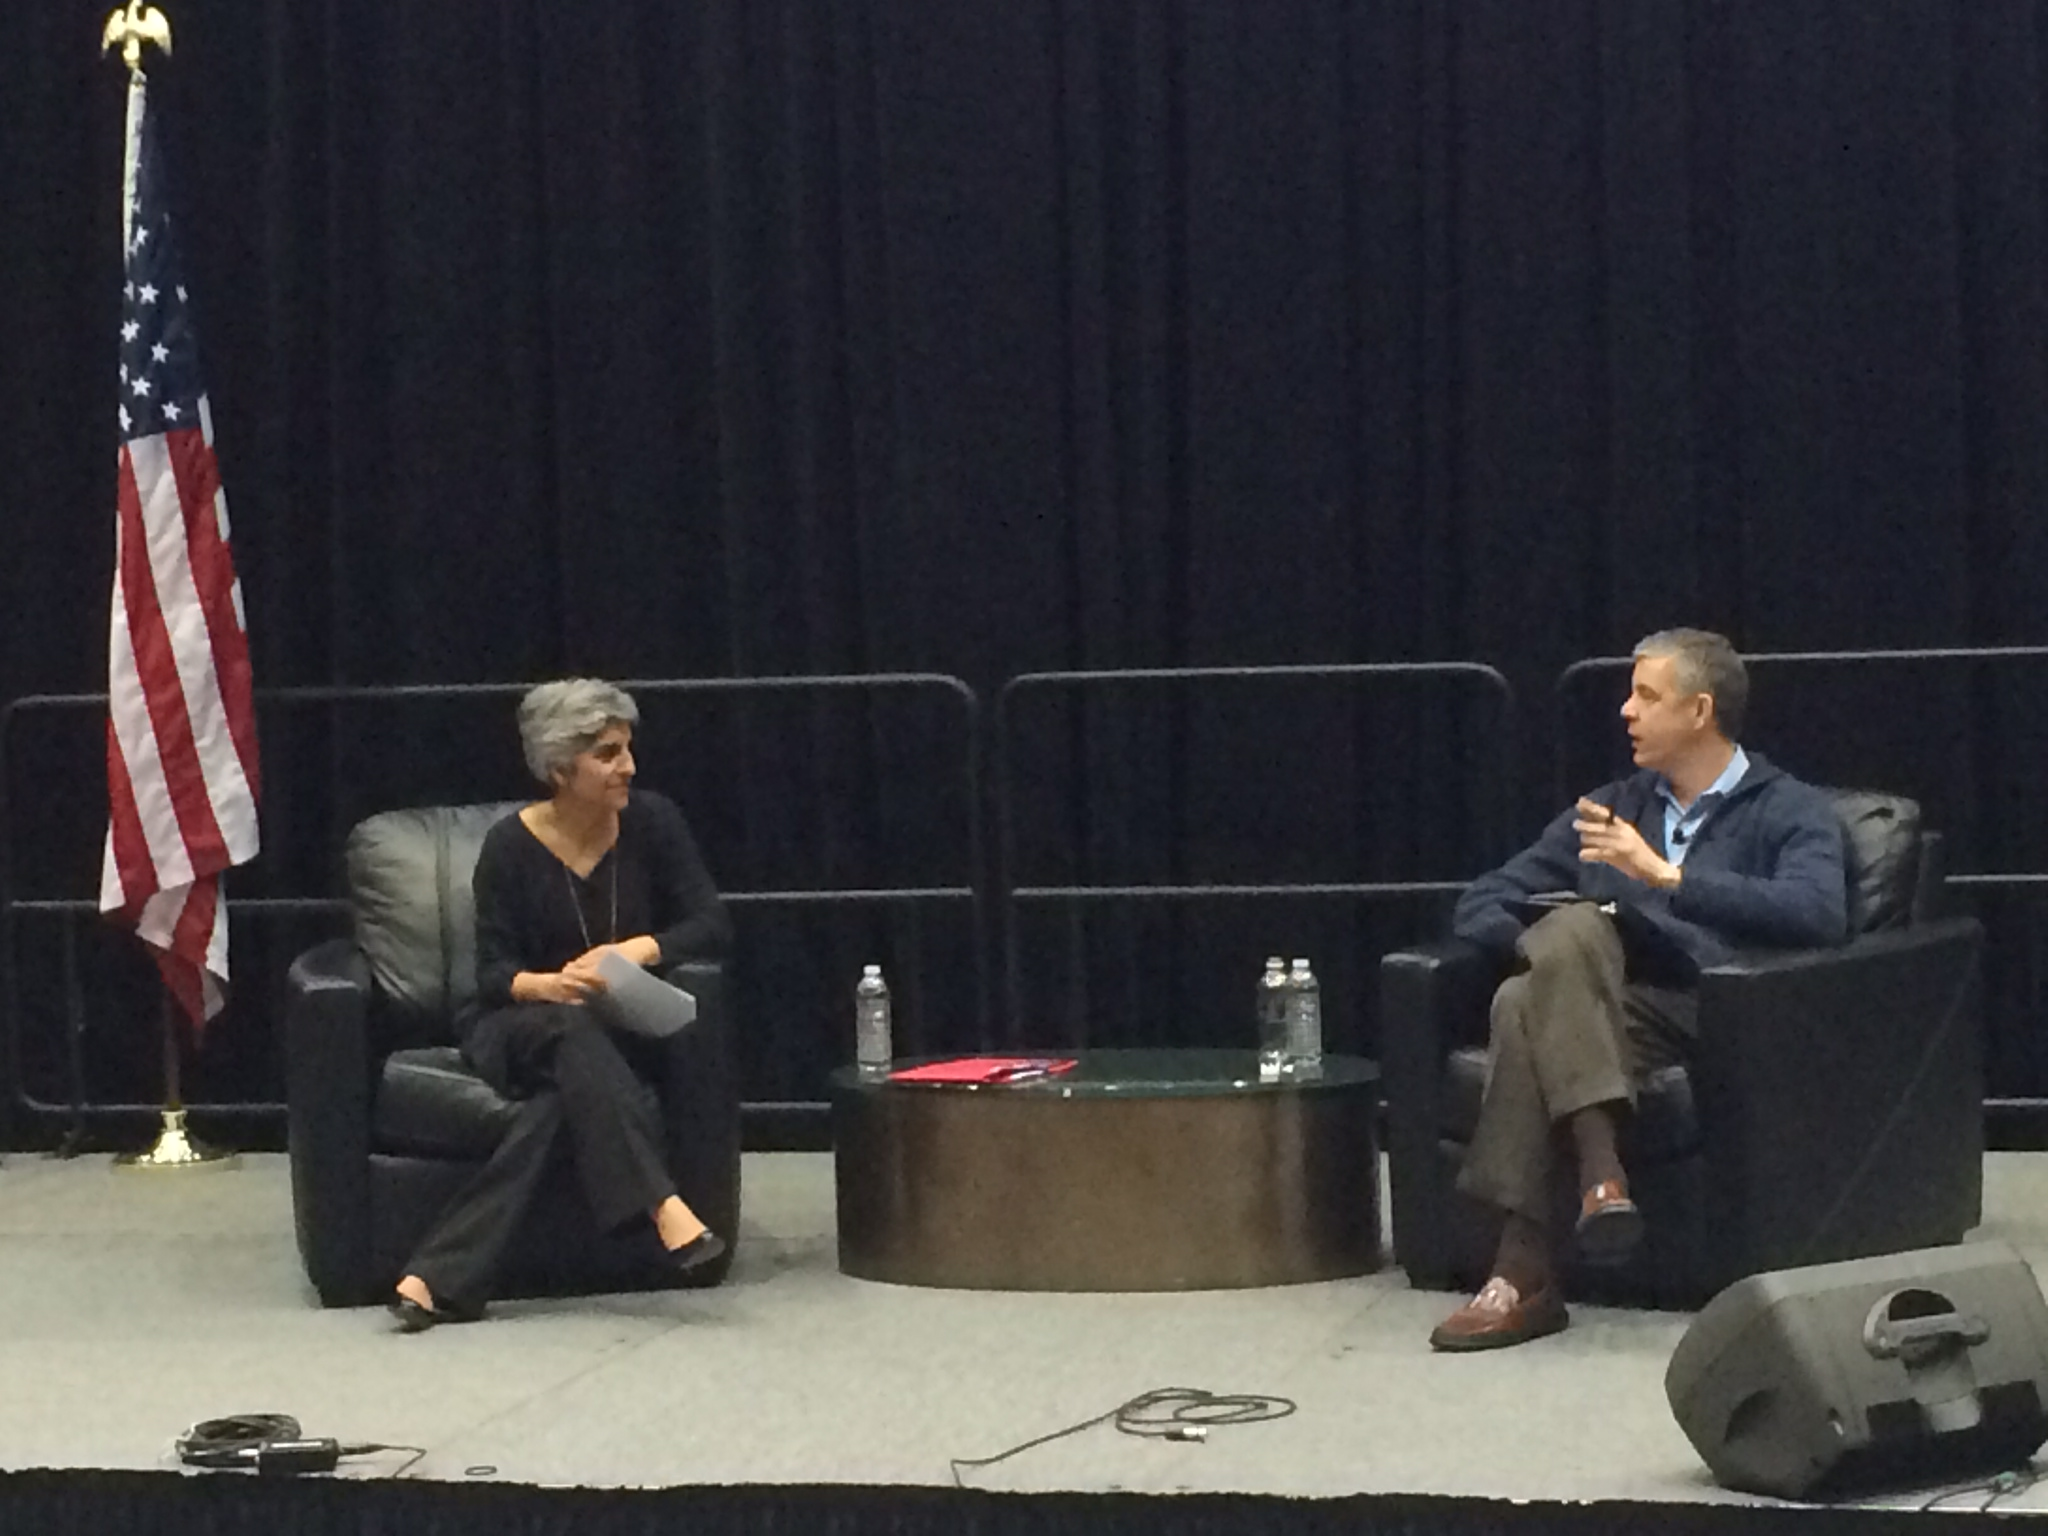 The armchair discussion between Kiran Ahuja and Arne Duncan during the ECAASU 2014 Conference Opening Ceremony.